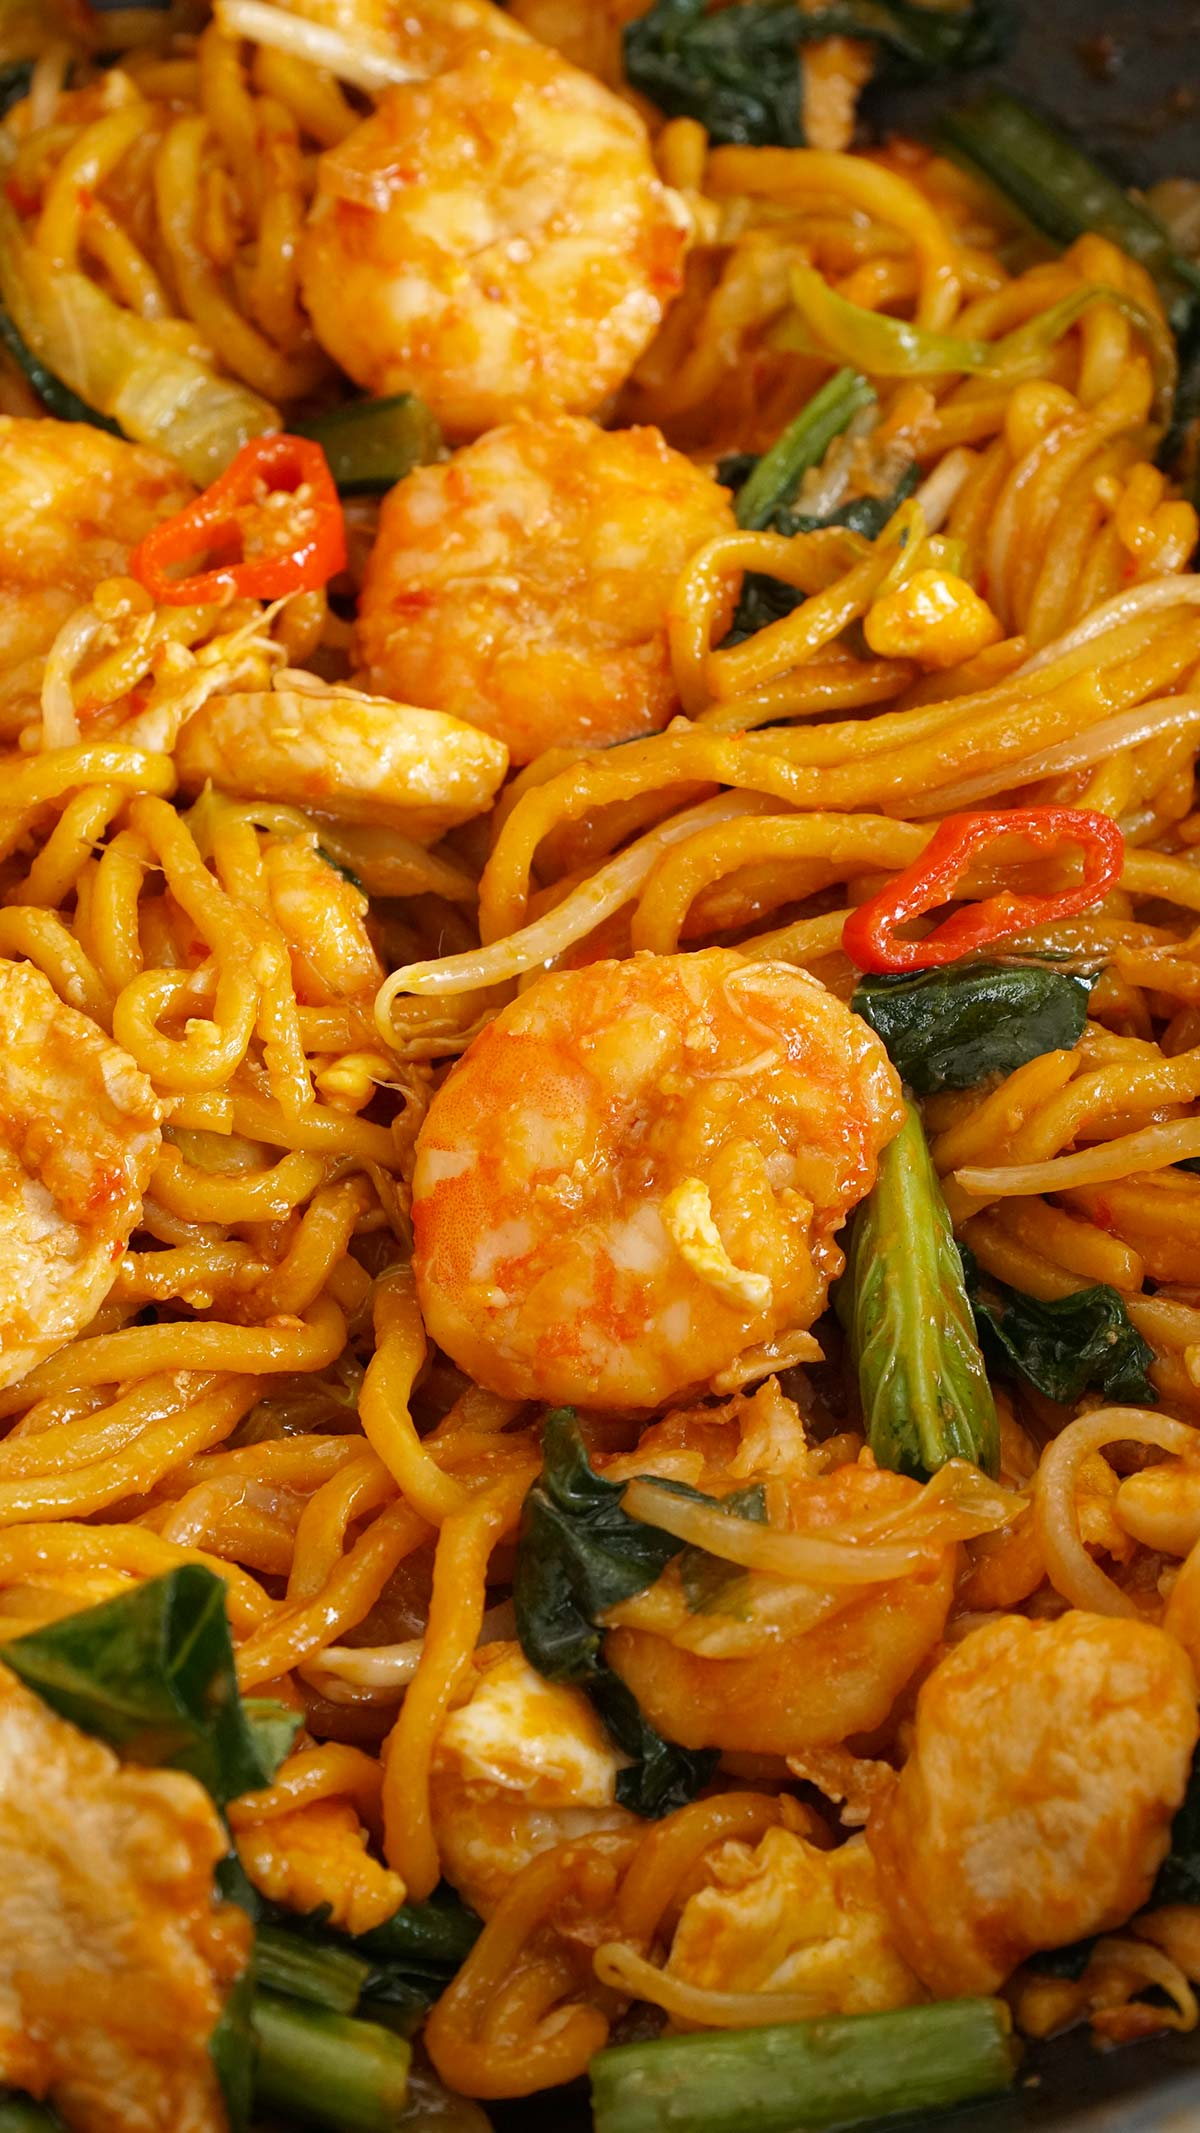 Stir fry yellow egg noodles with prawns, chicken slices, and vegetables.